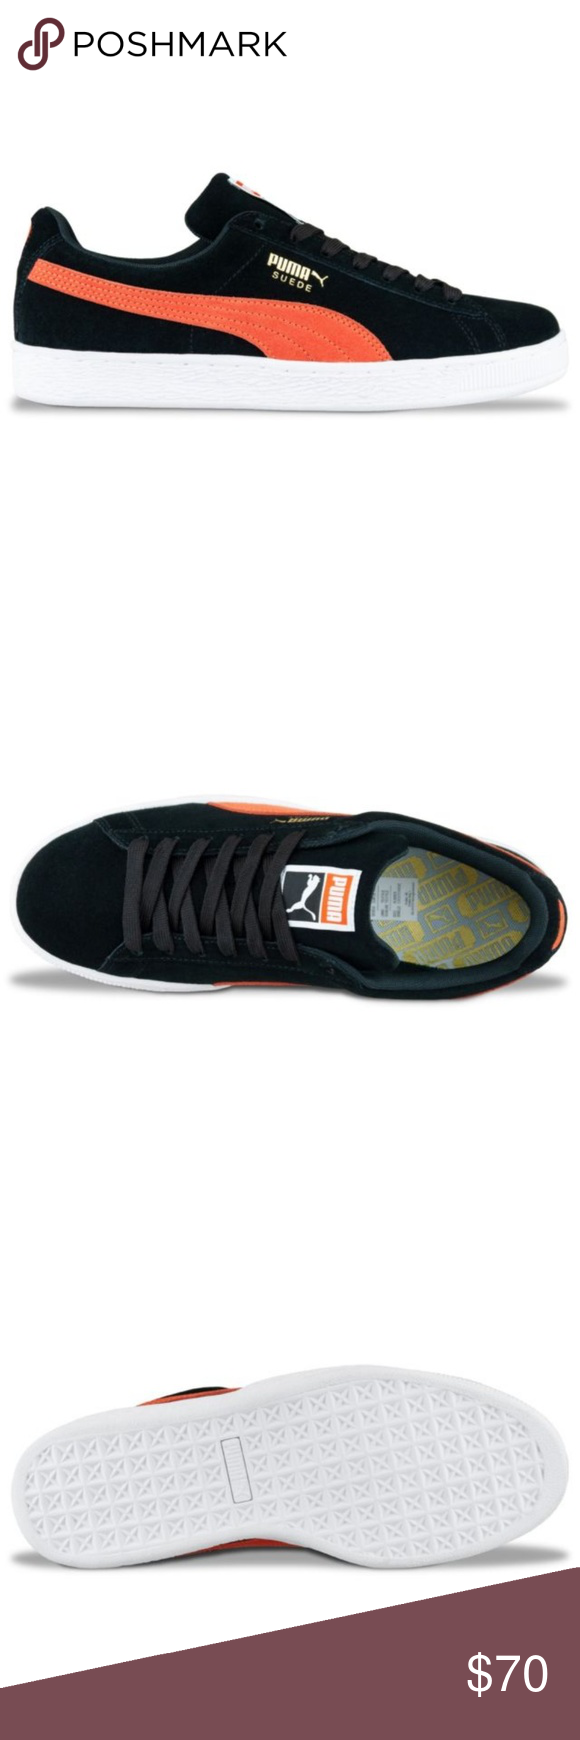 d96b4a20a6d0 Puma Suede Classic Trainers - Puma suede classic i Condition  New with box   A brand-new